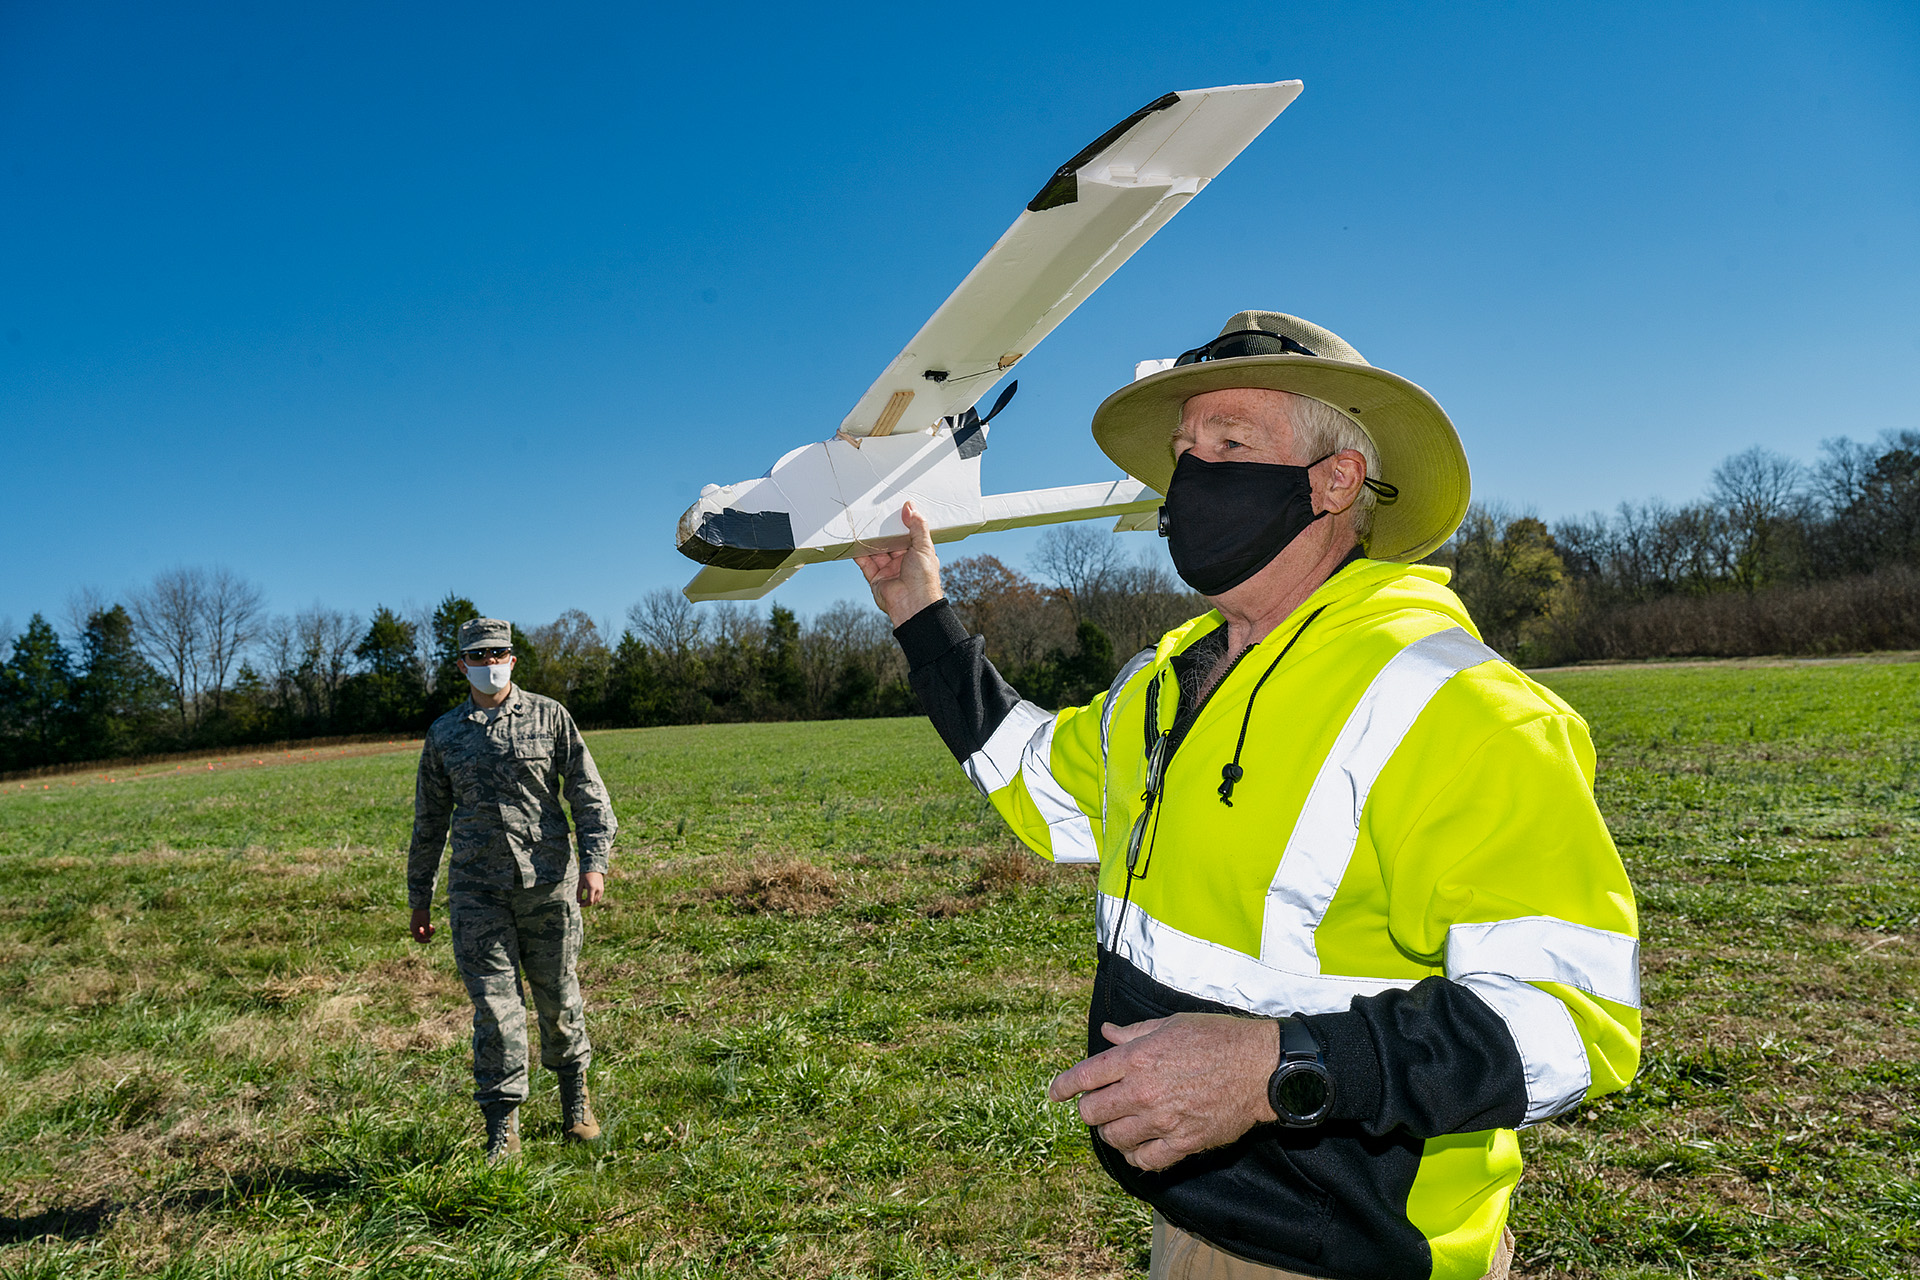 Kevin Corns, assistant professor in the Department of Aerospace, is shown with students flying their Unmanned Aircraft Systems drones at the MTSU Farm in Lascassas, Tenn. He said this is a fixed-wing drone they built in an upper-division UAS Operations program class. (MTSU photo by Andy Heidt)